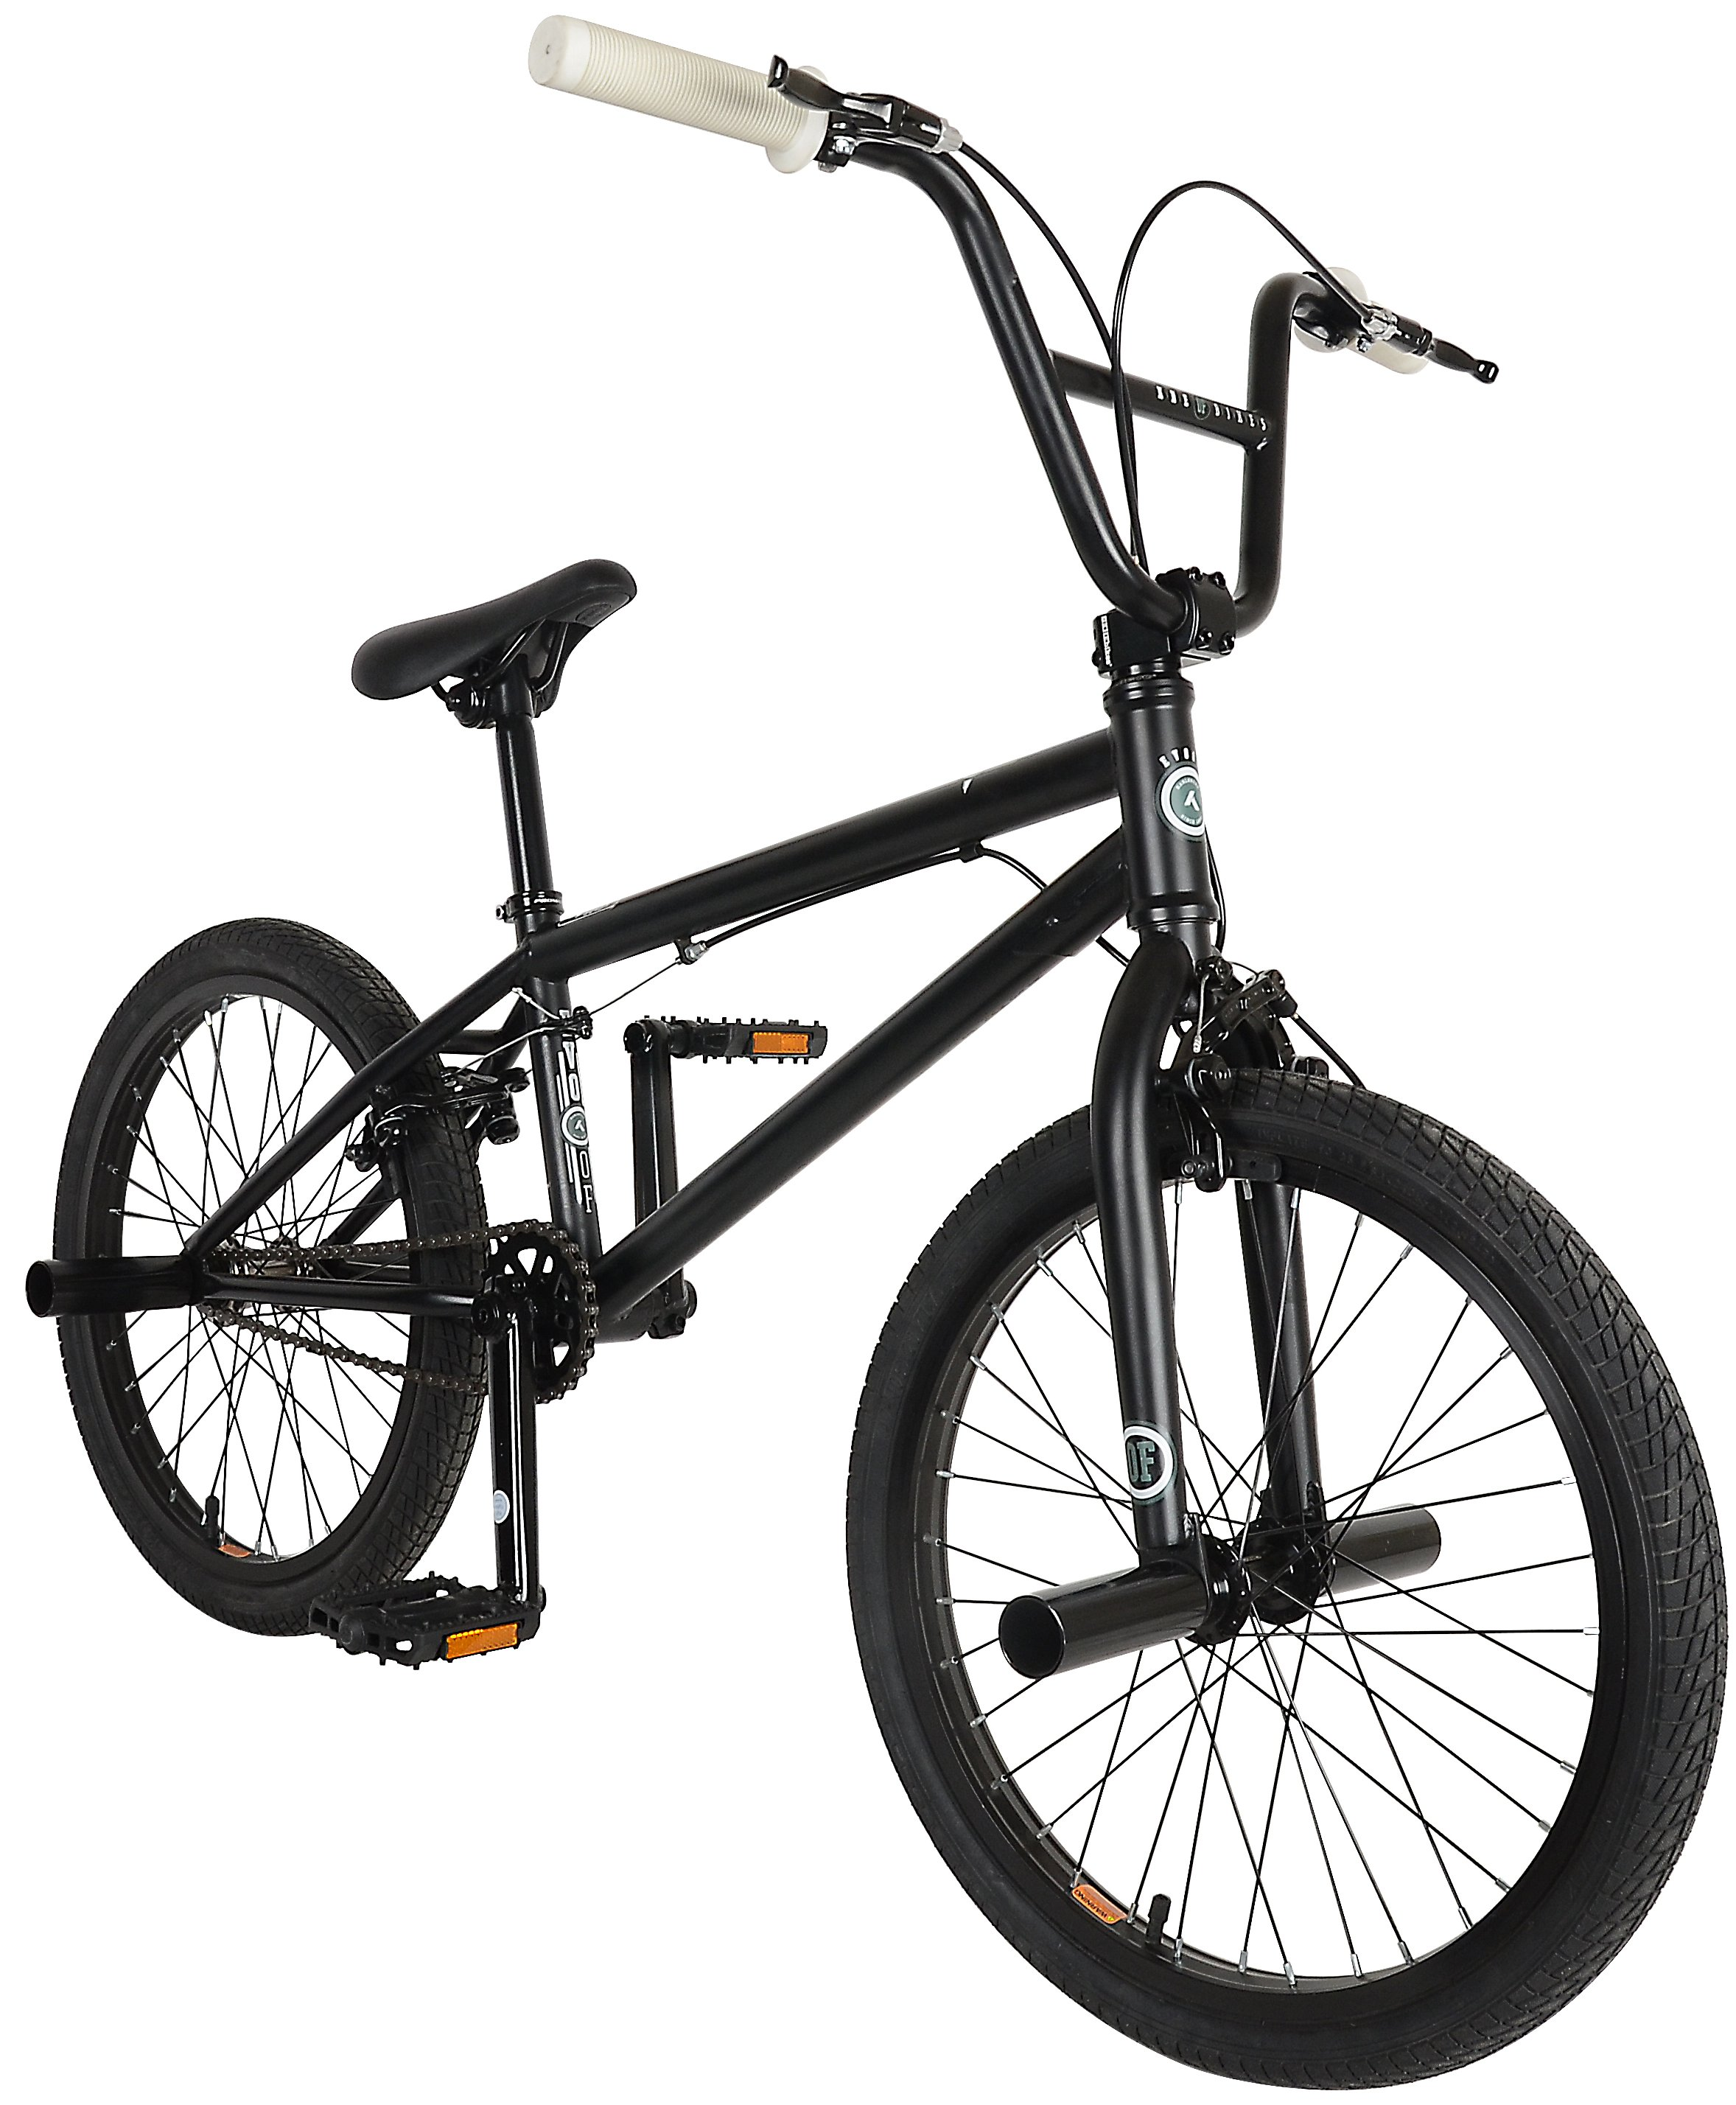 KHE Evo 0F BMX Bicycle